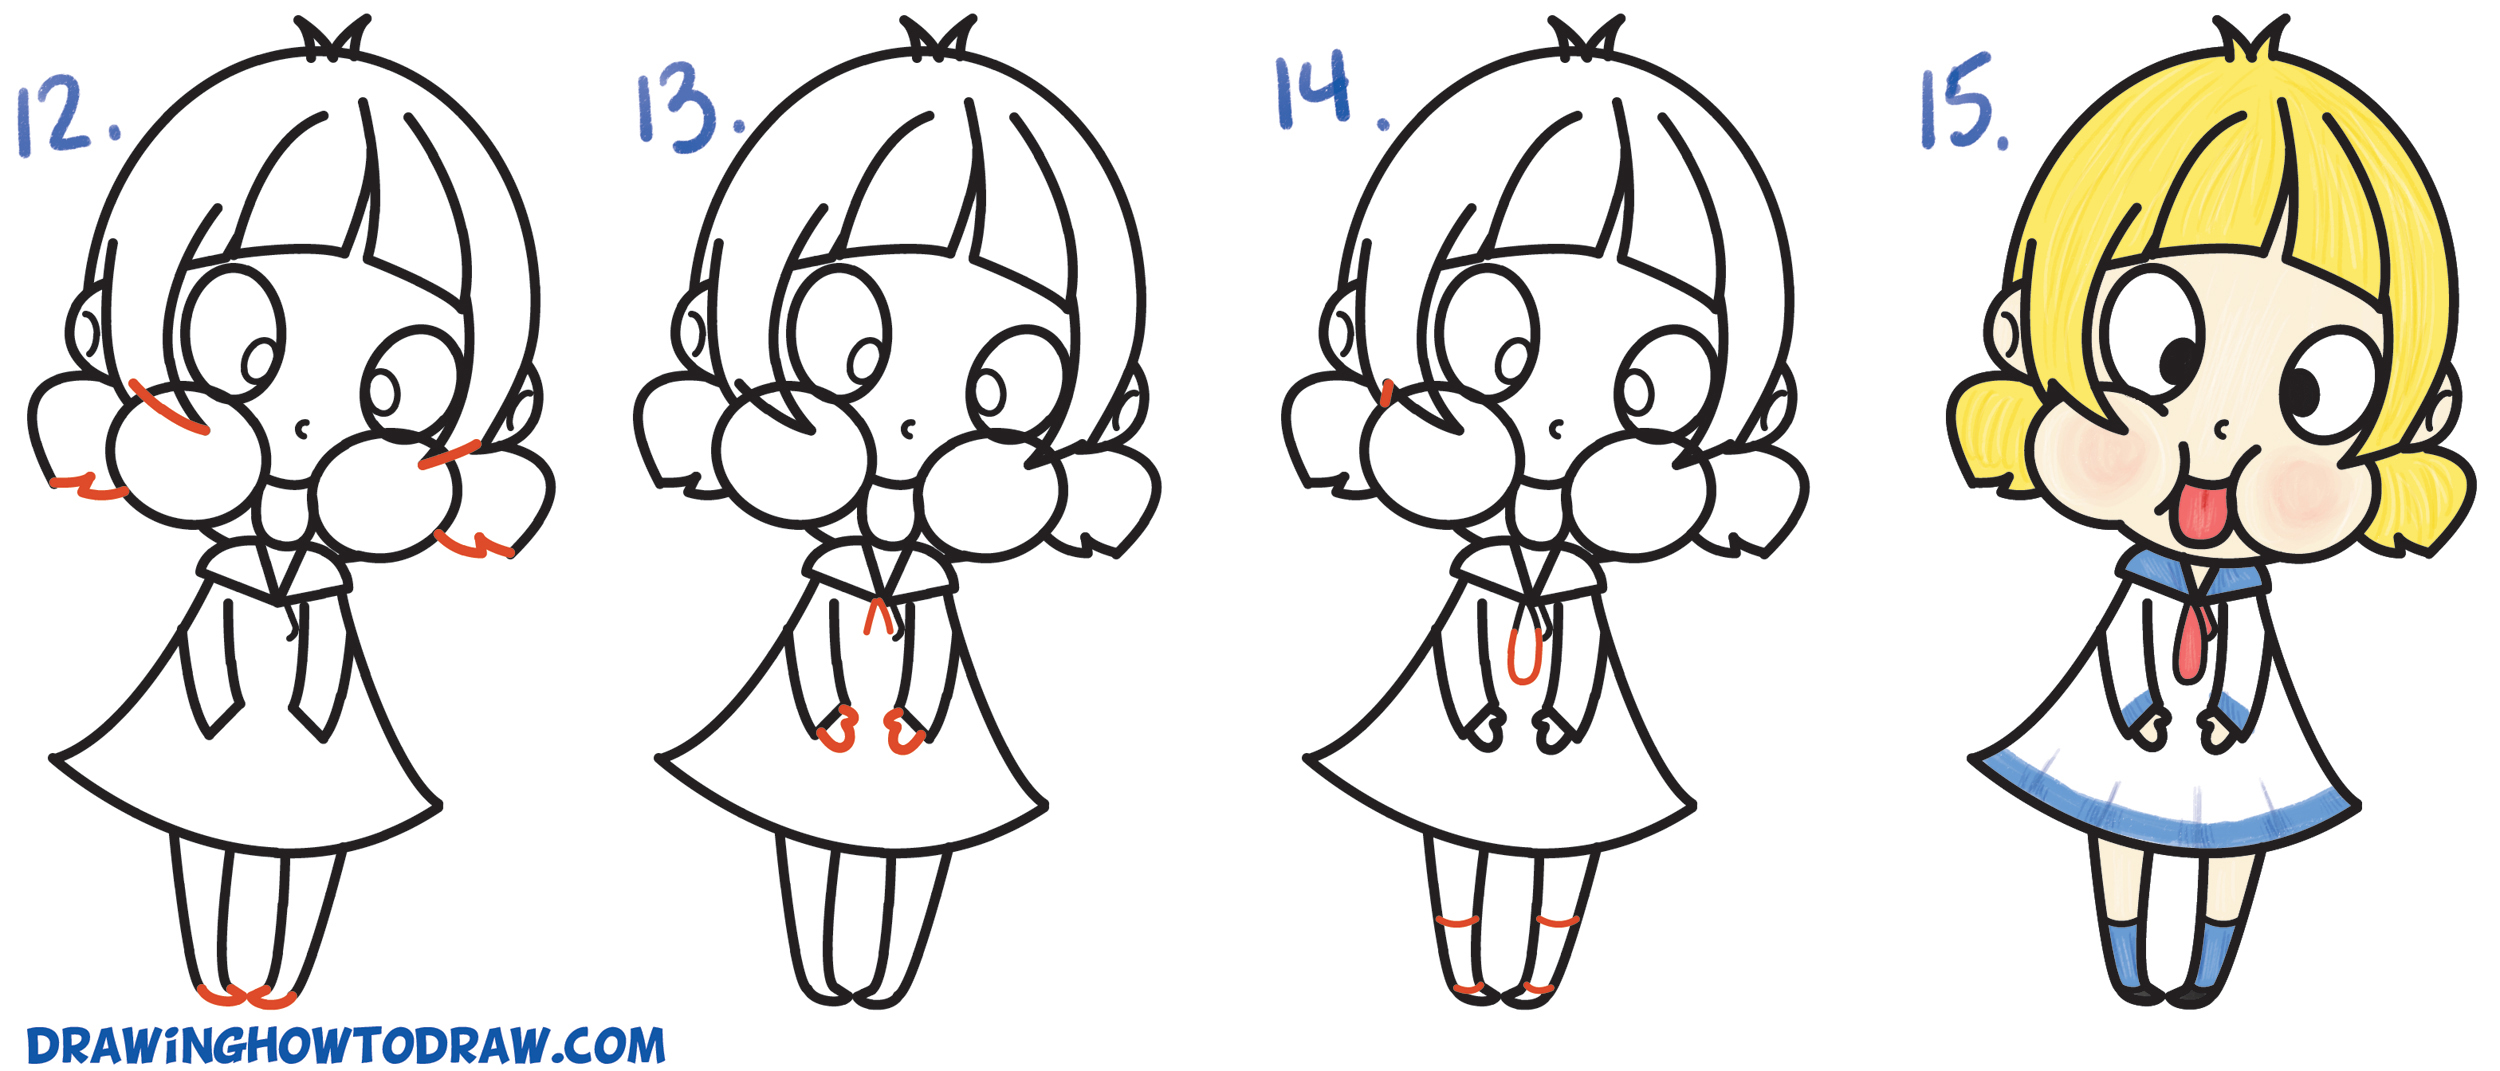 How to Draw a Cute Cartoon Girl (Chibi) Sticking Her ...